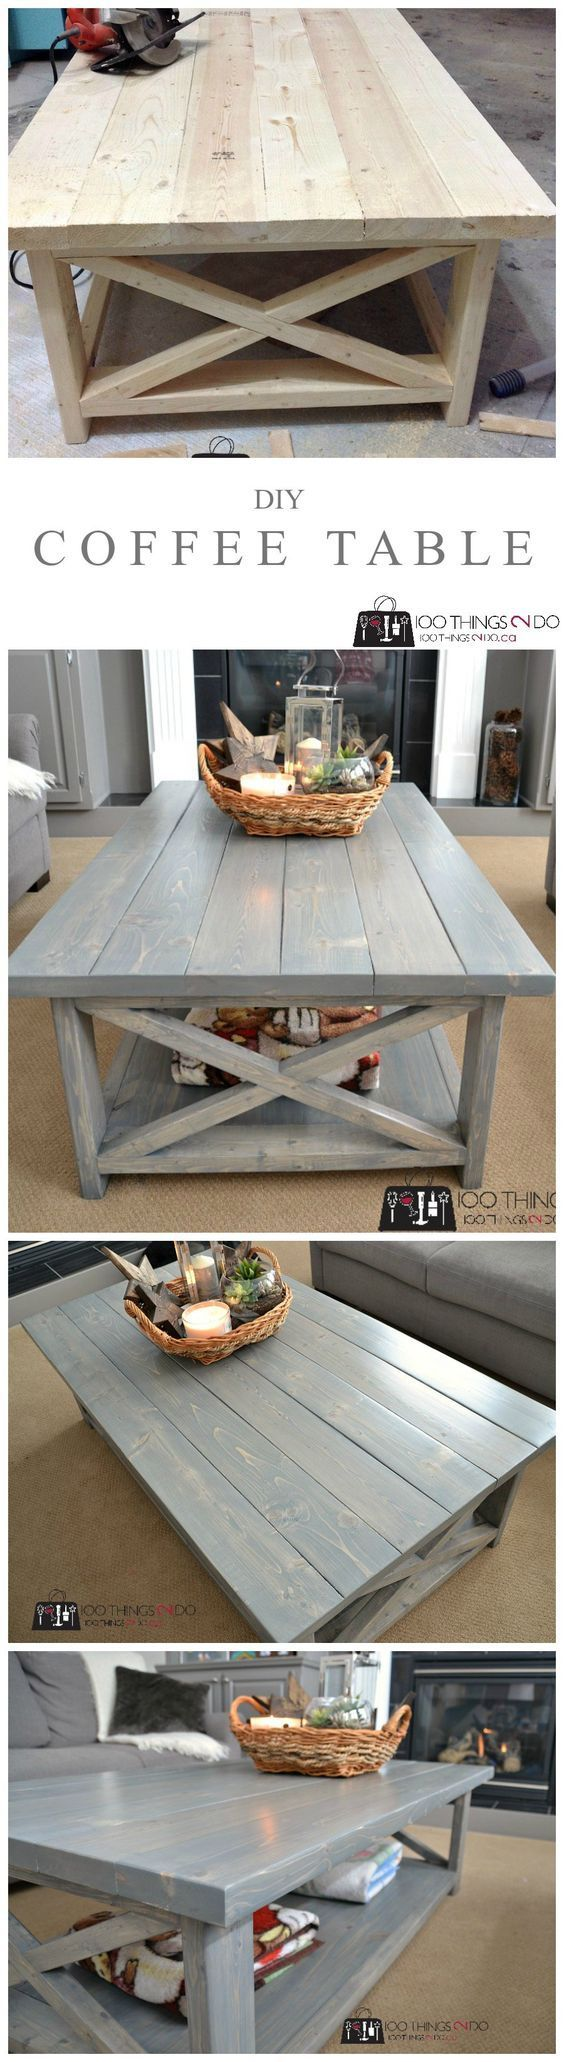 Best 25 coffee tables ideas on pinterest coffee table styling 15 easy diy reclaimed wood projects rustic wood coffee tablediy geotapseo Image collections